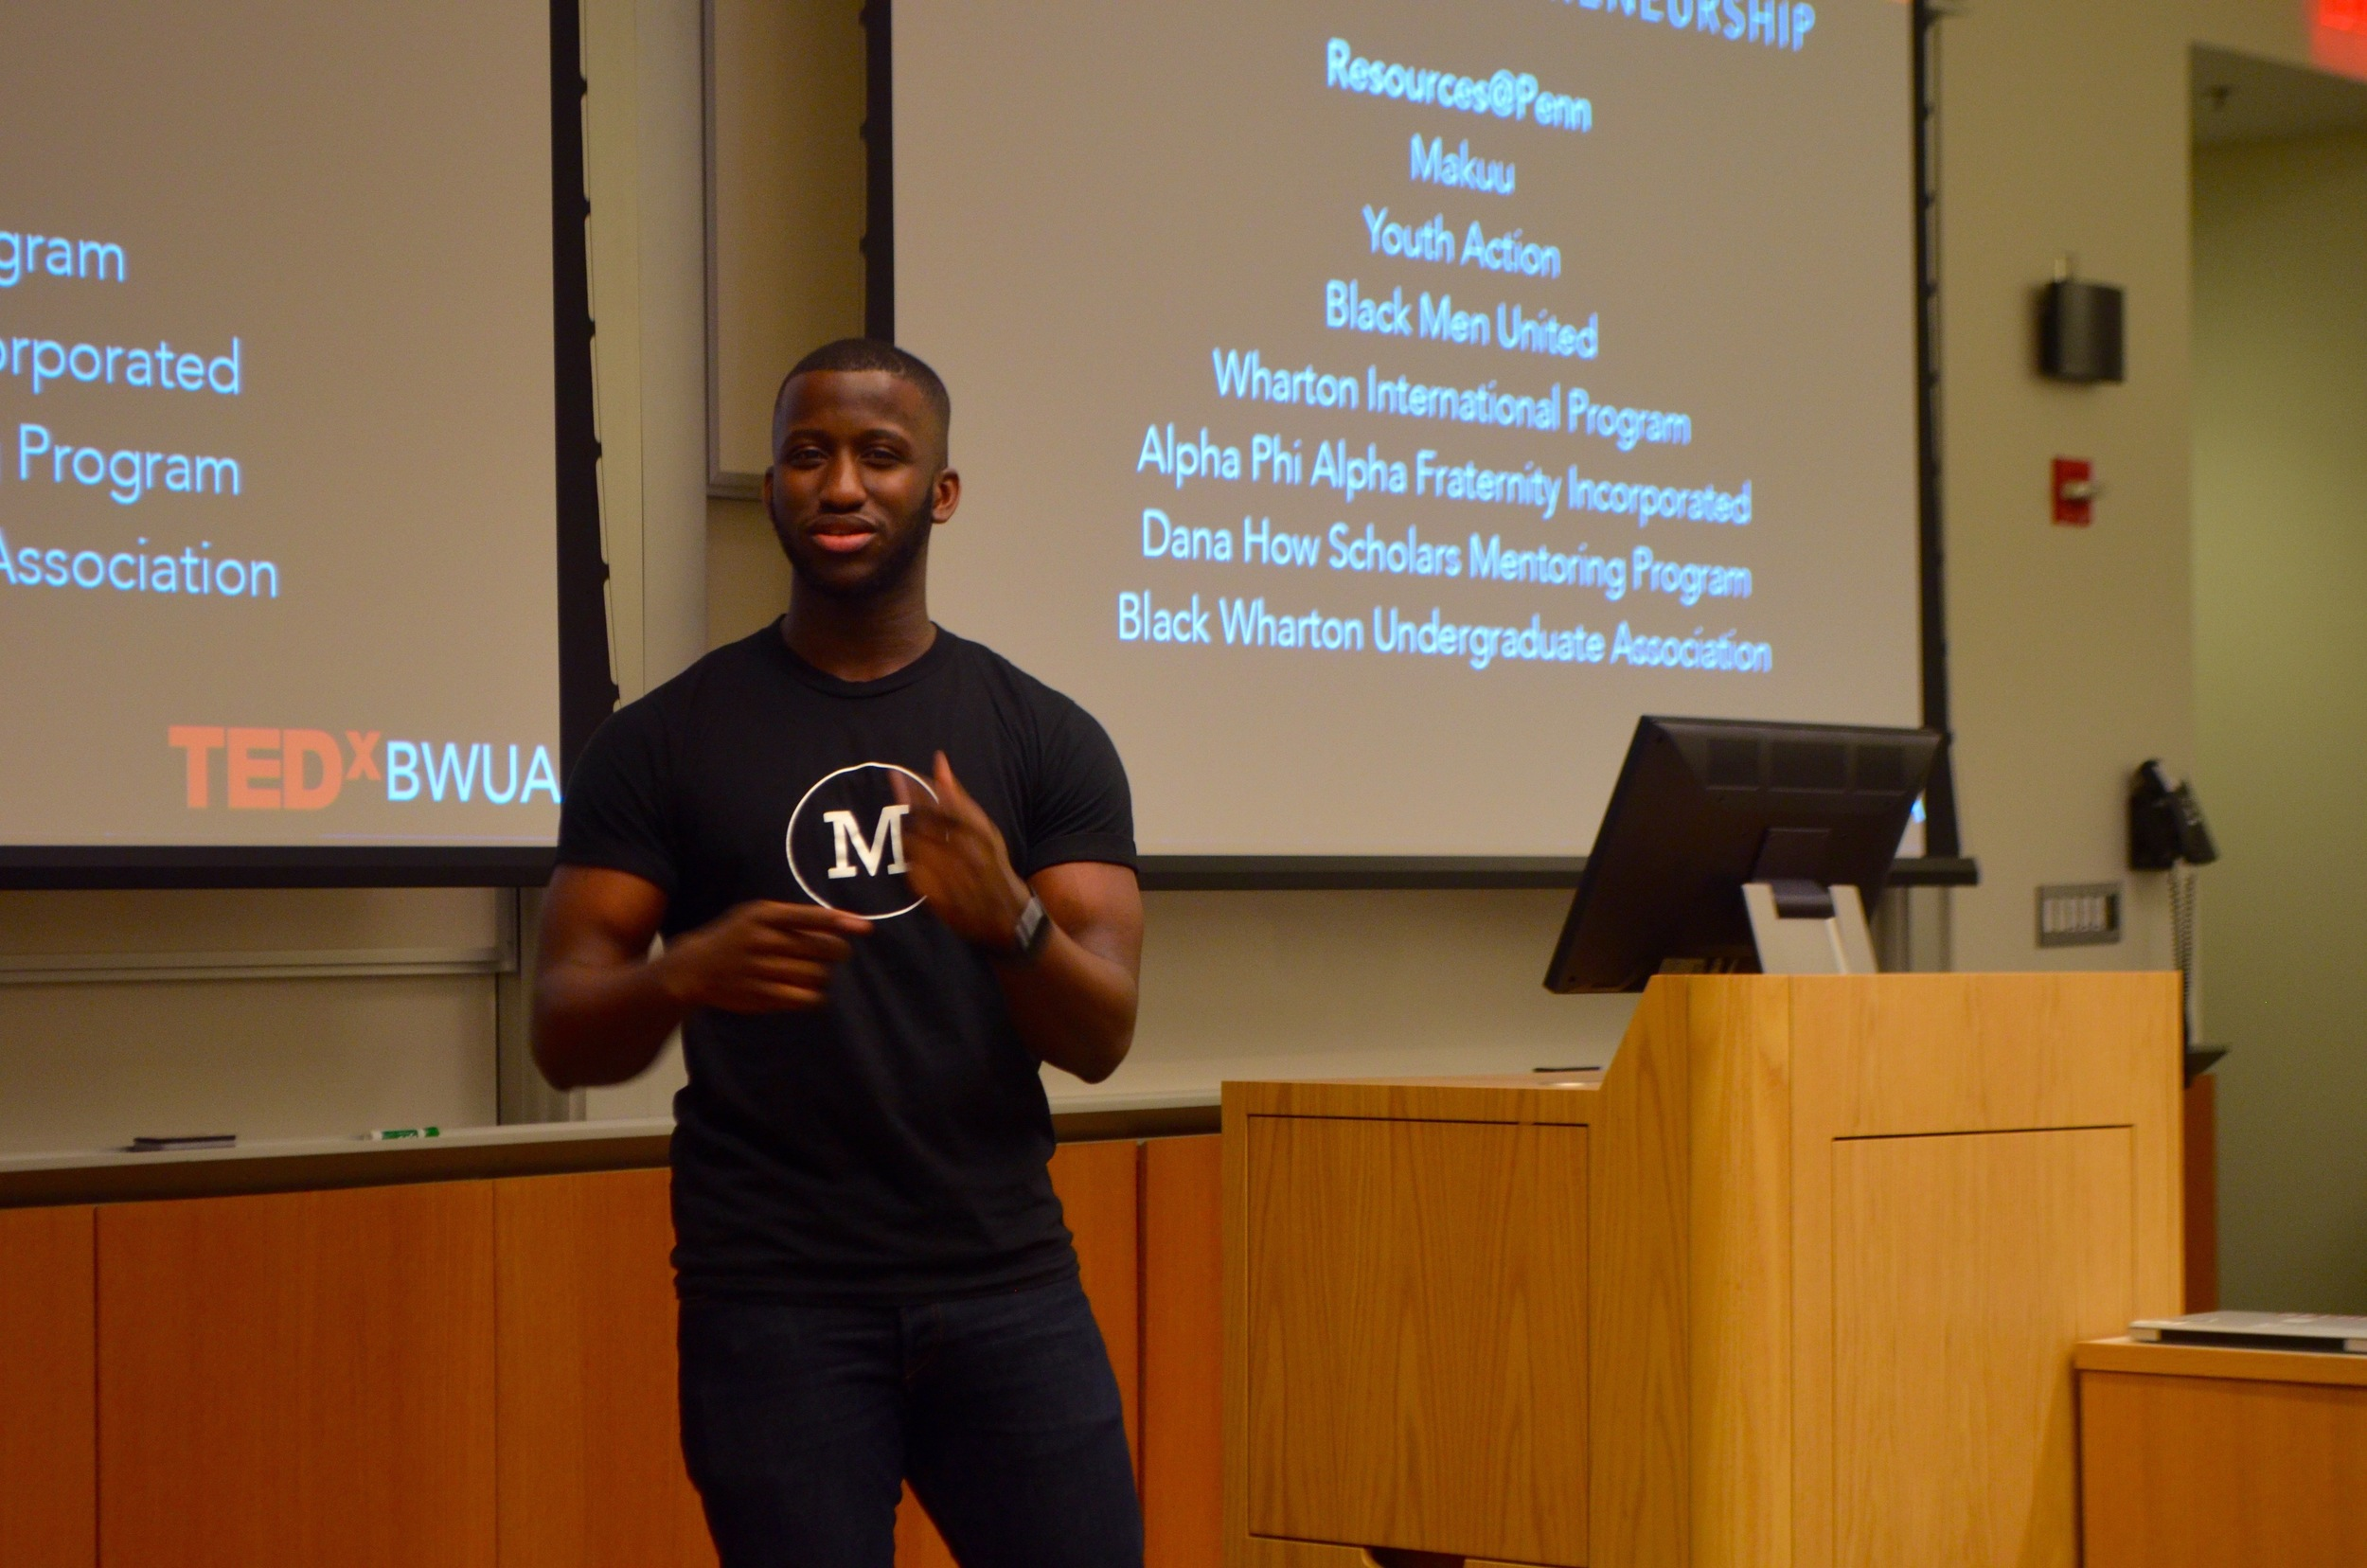 TEDx Speaker and BWUA President, Anthony Perry